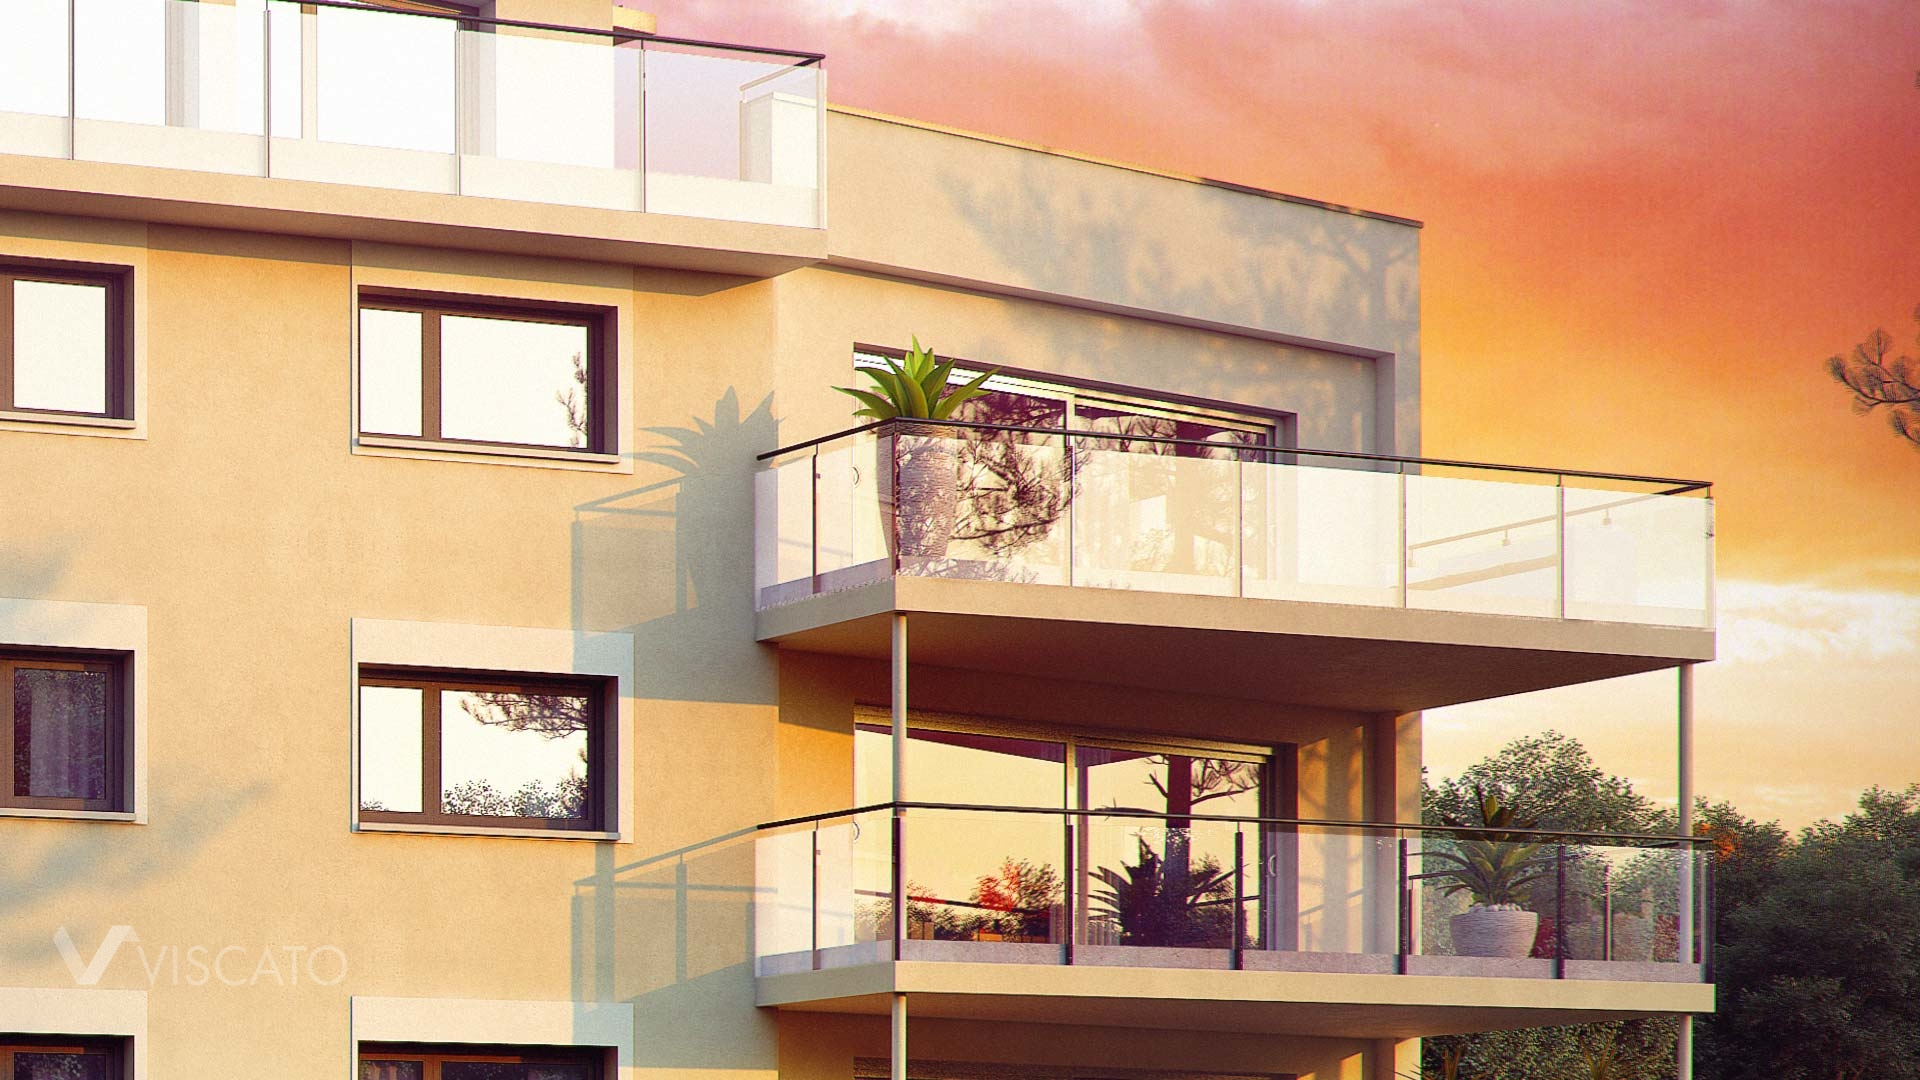 Sunset exterior visualization of multi family real estate - detail with balconies and plants